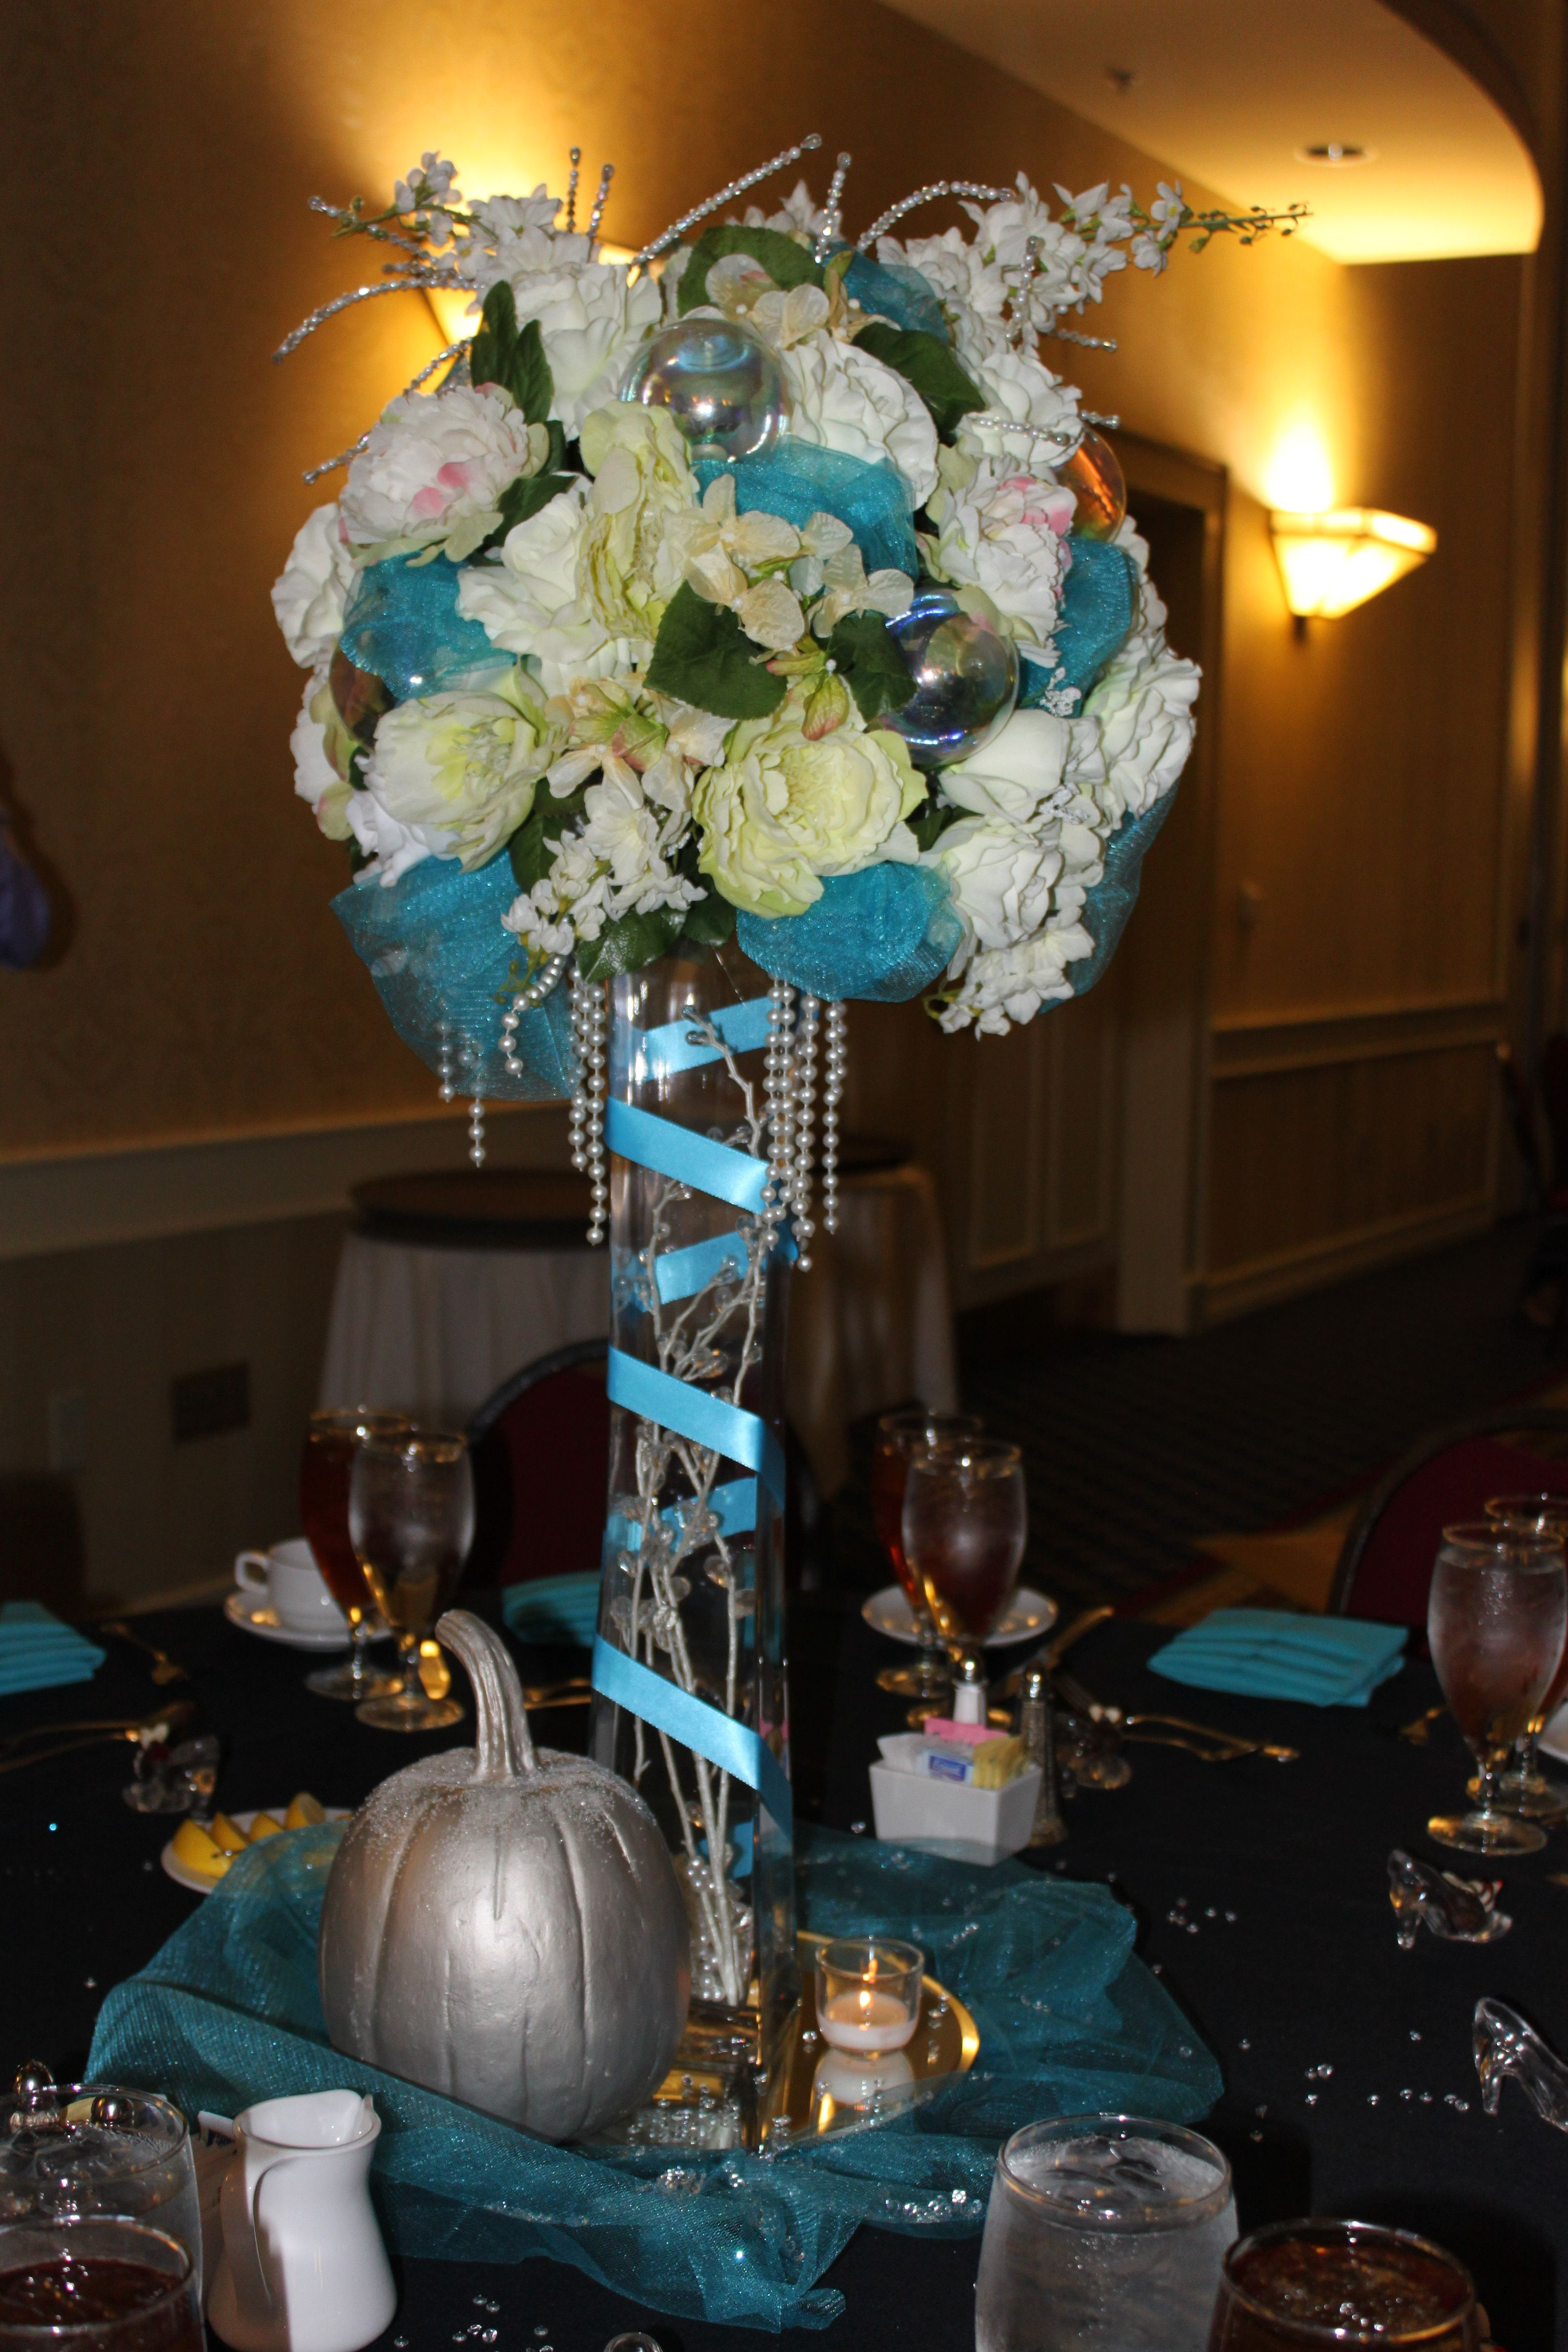 Matrimonio Tema Once Upon A Time : Once upon a time event fairytales cinderella centerpiece